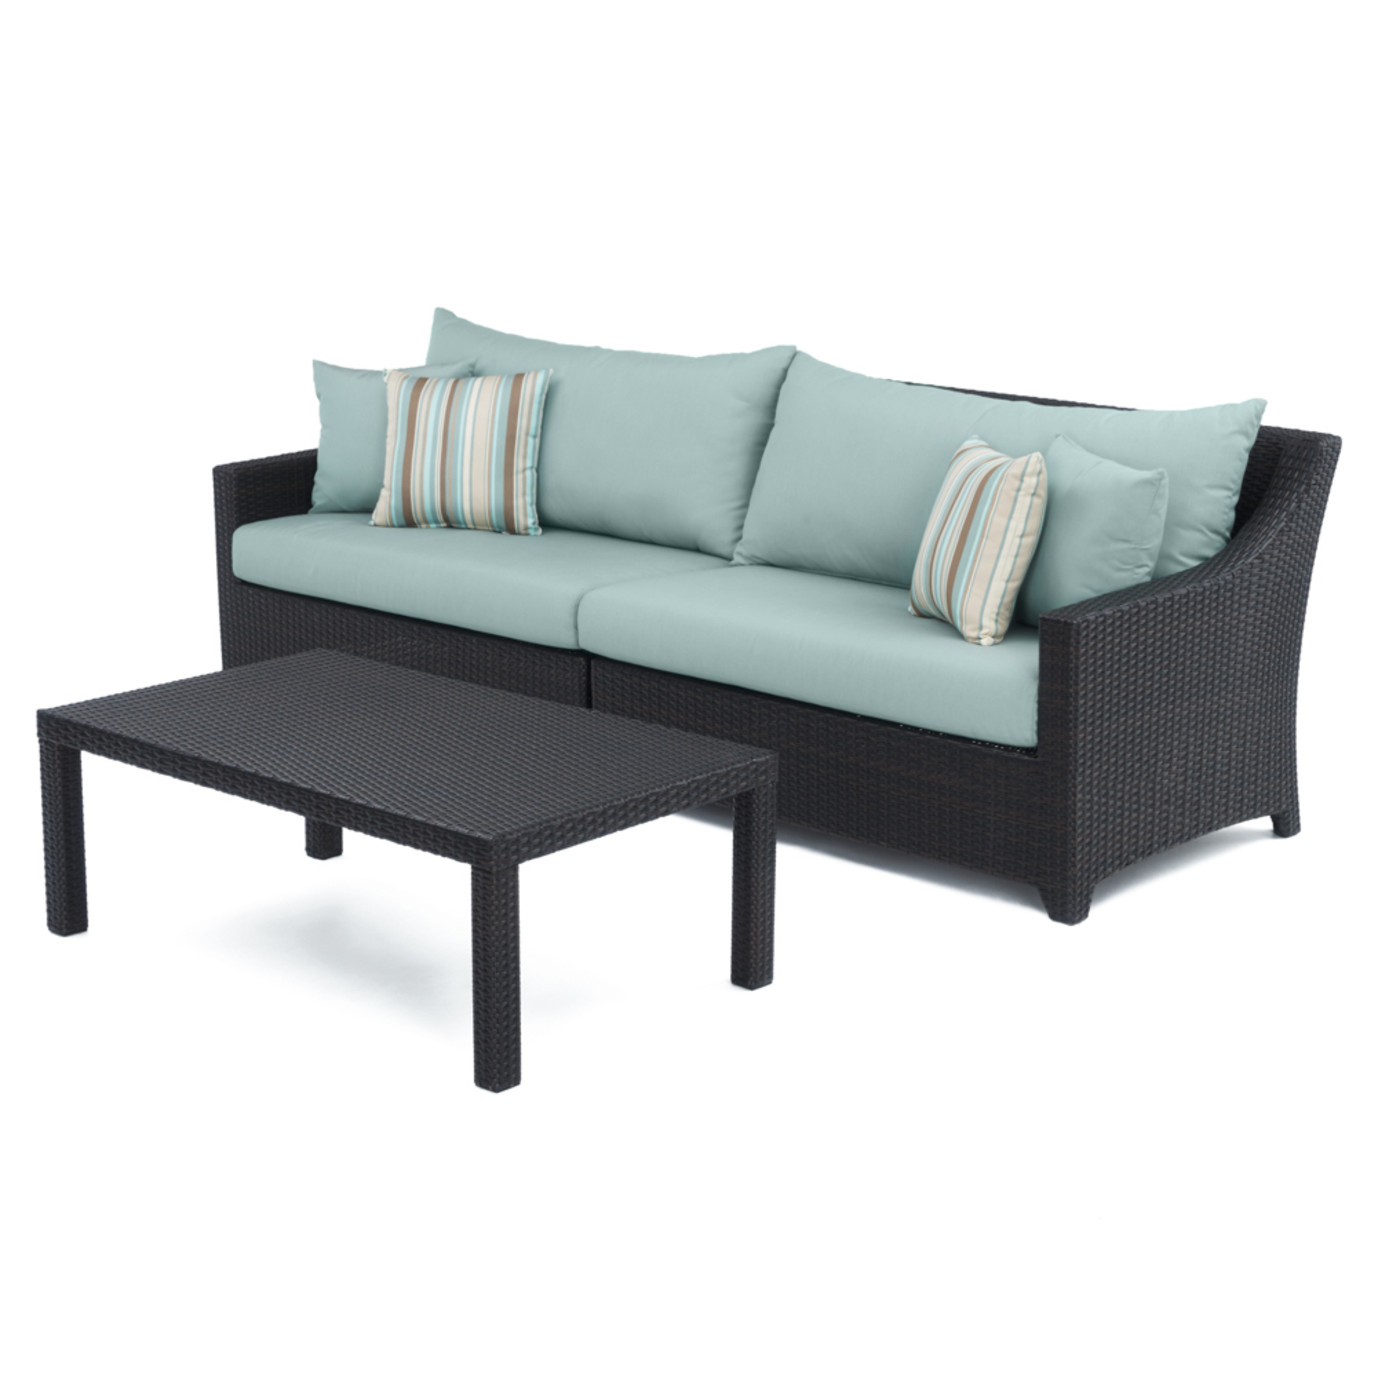 Deco™ Sofa with Coffee Table - Bliss Blue